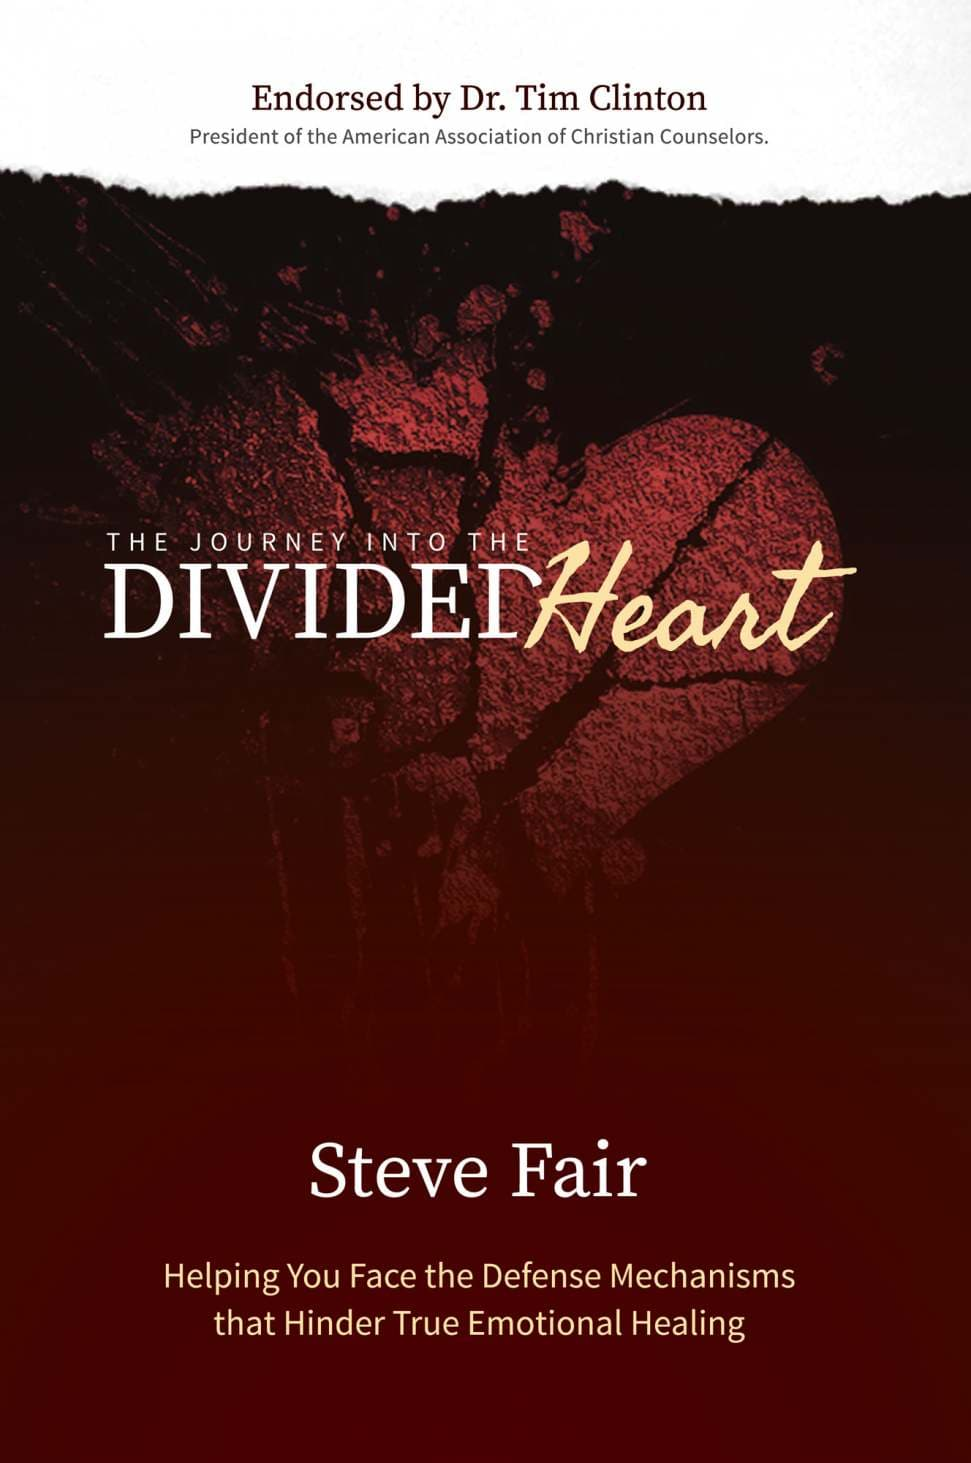 New Book Released: The Journey Into the Divided Heart by Steve Fair